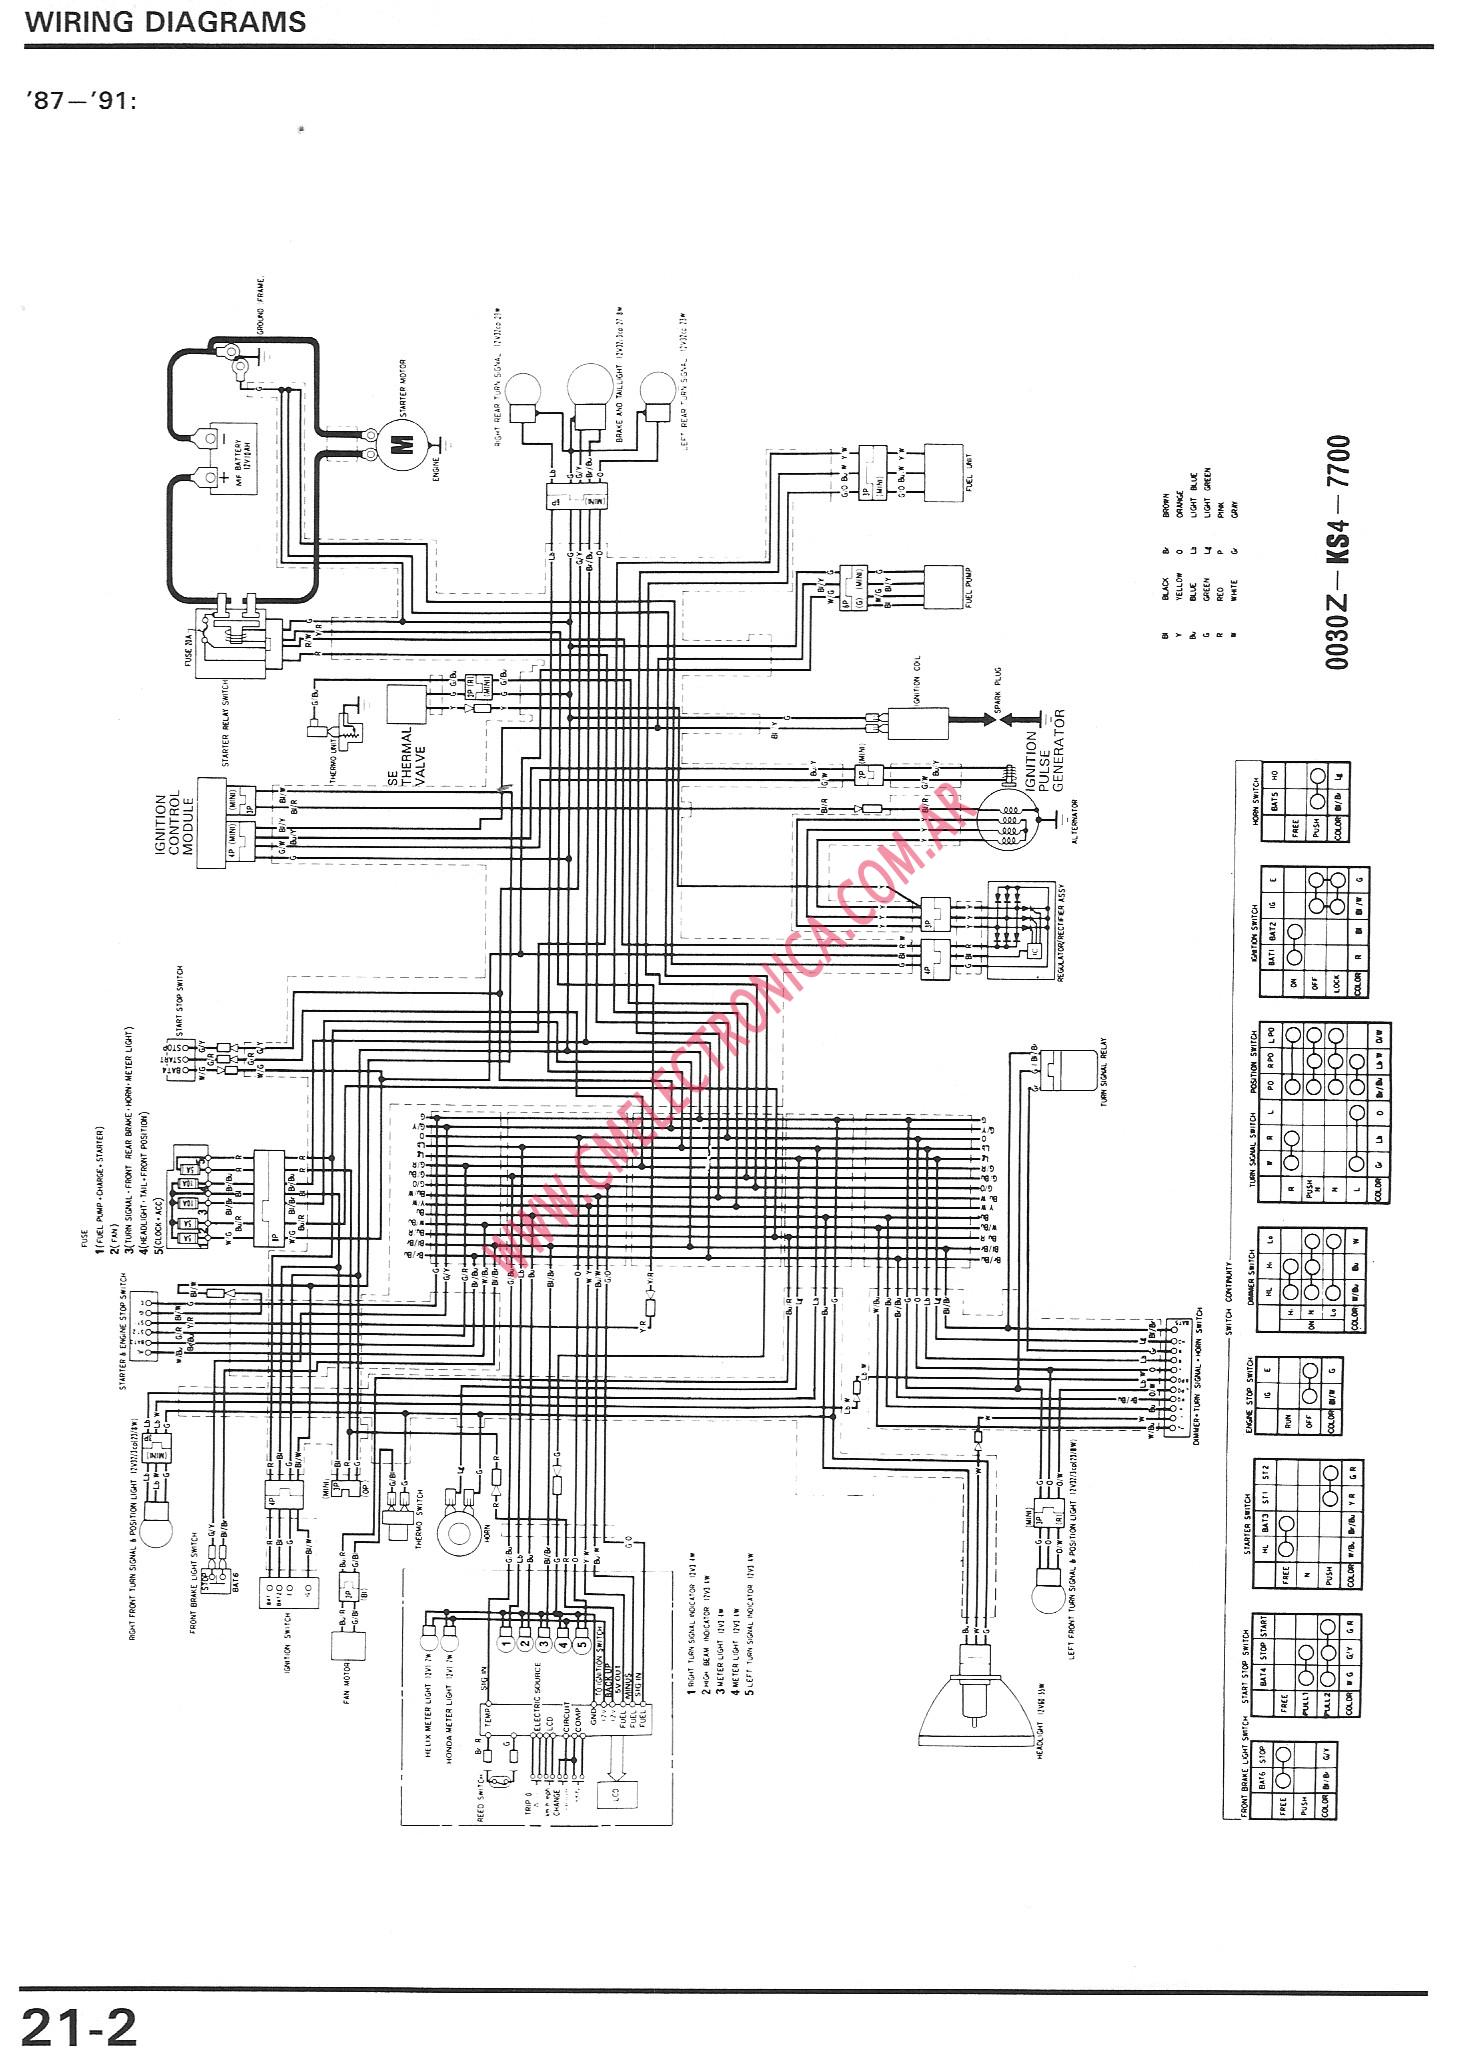 Honda Helix 250 Wiring Diagram Free For You Ruckus Pdf Diagrama Cn250